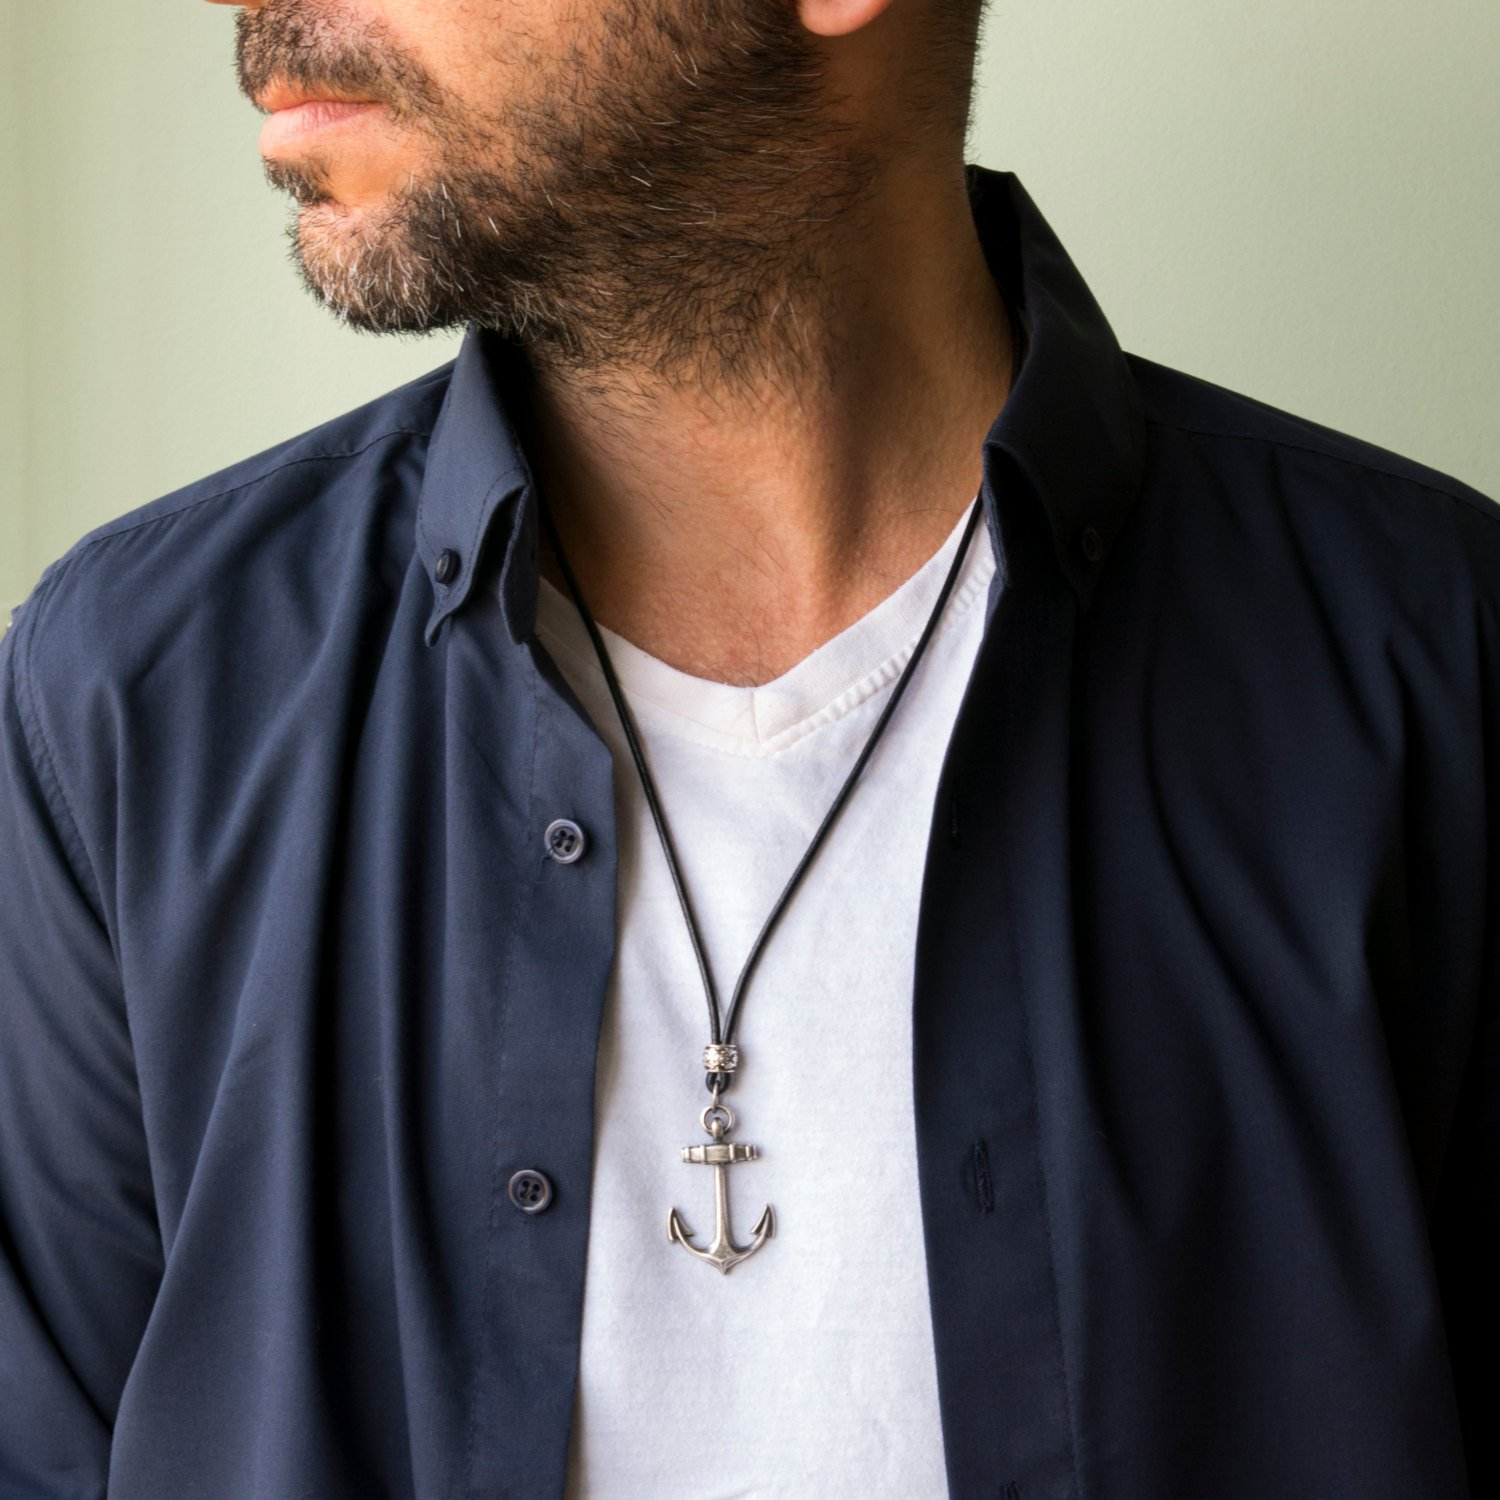 Men's Necklace - Men's Anchor Necklace - Men's Silver Necklace - Men's Leather Necklace - Men's Gift